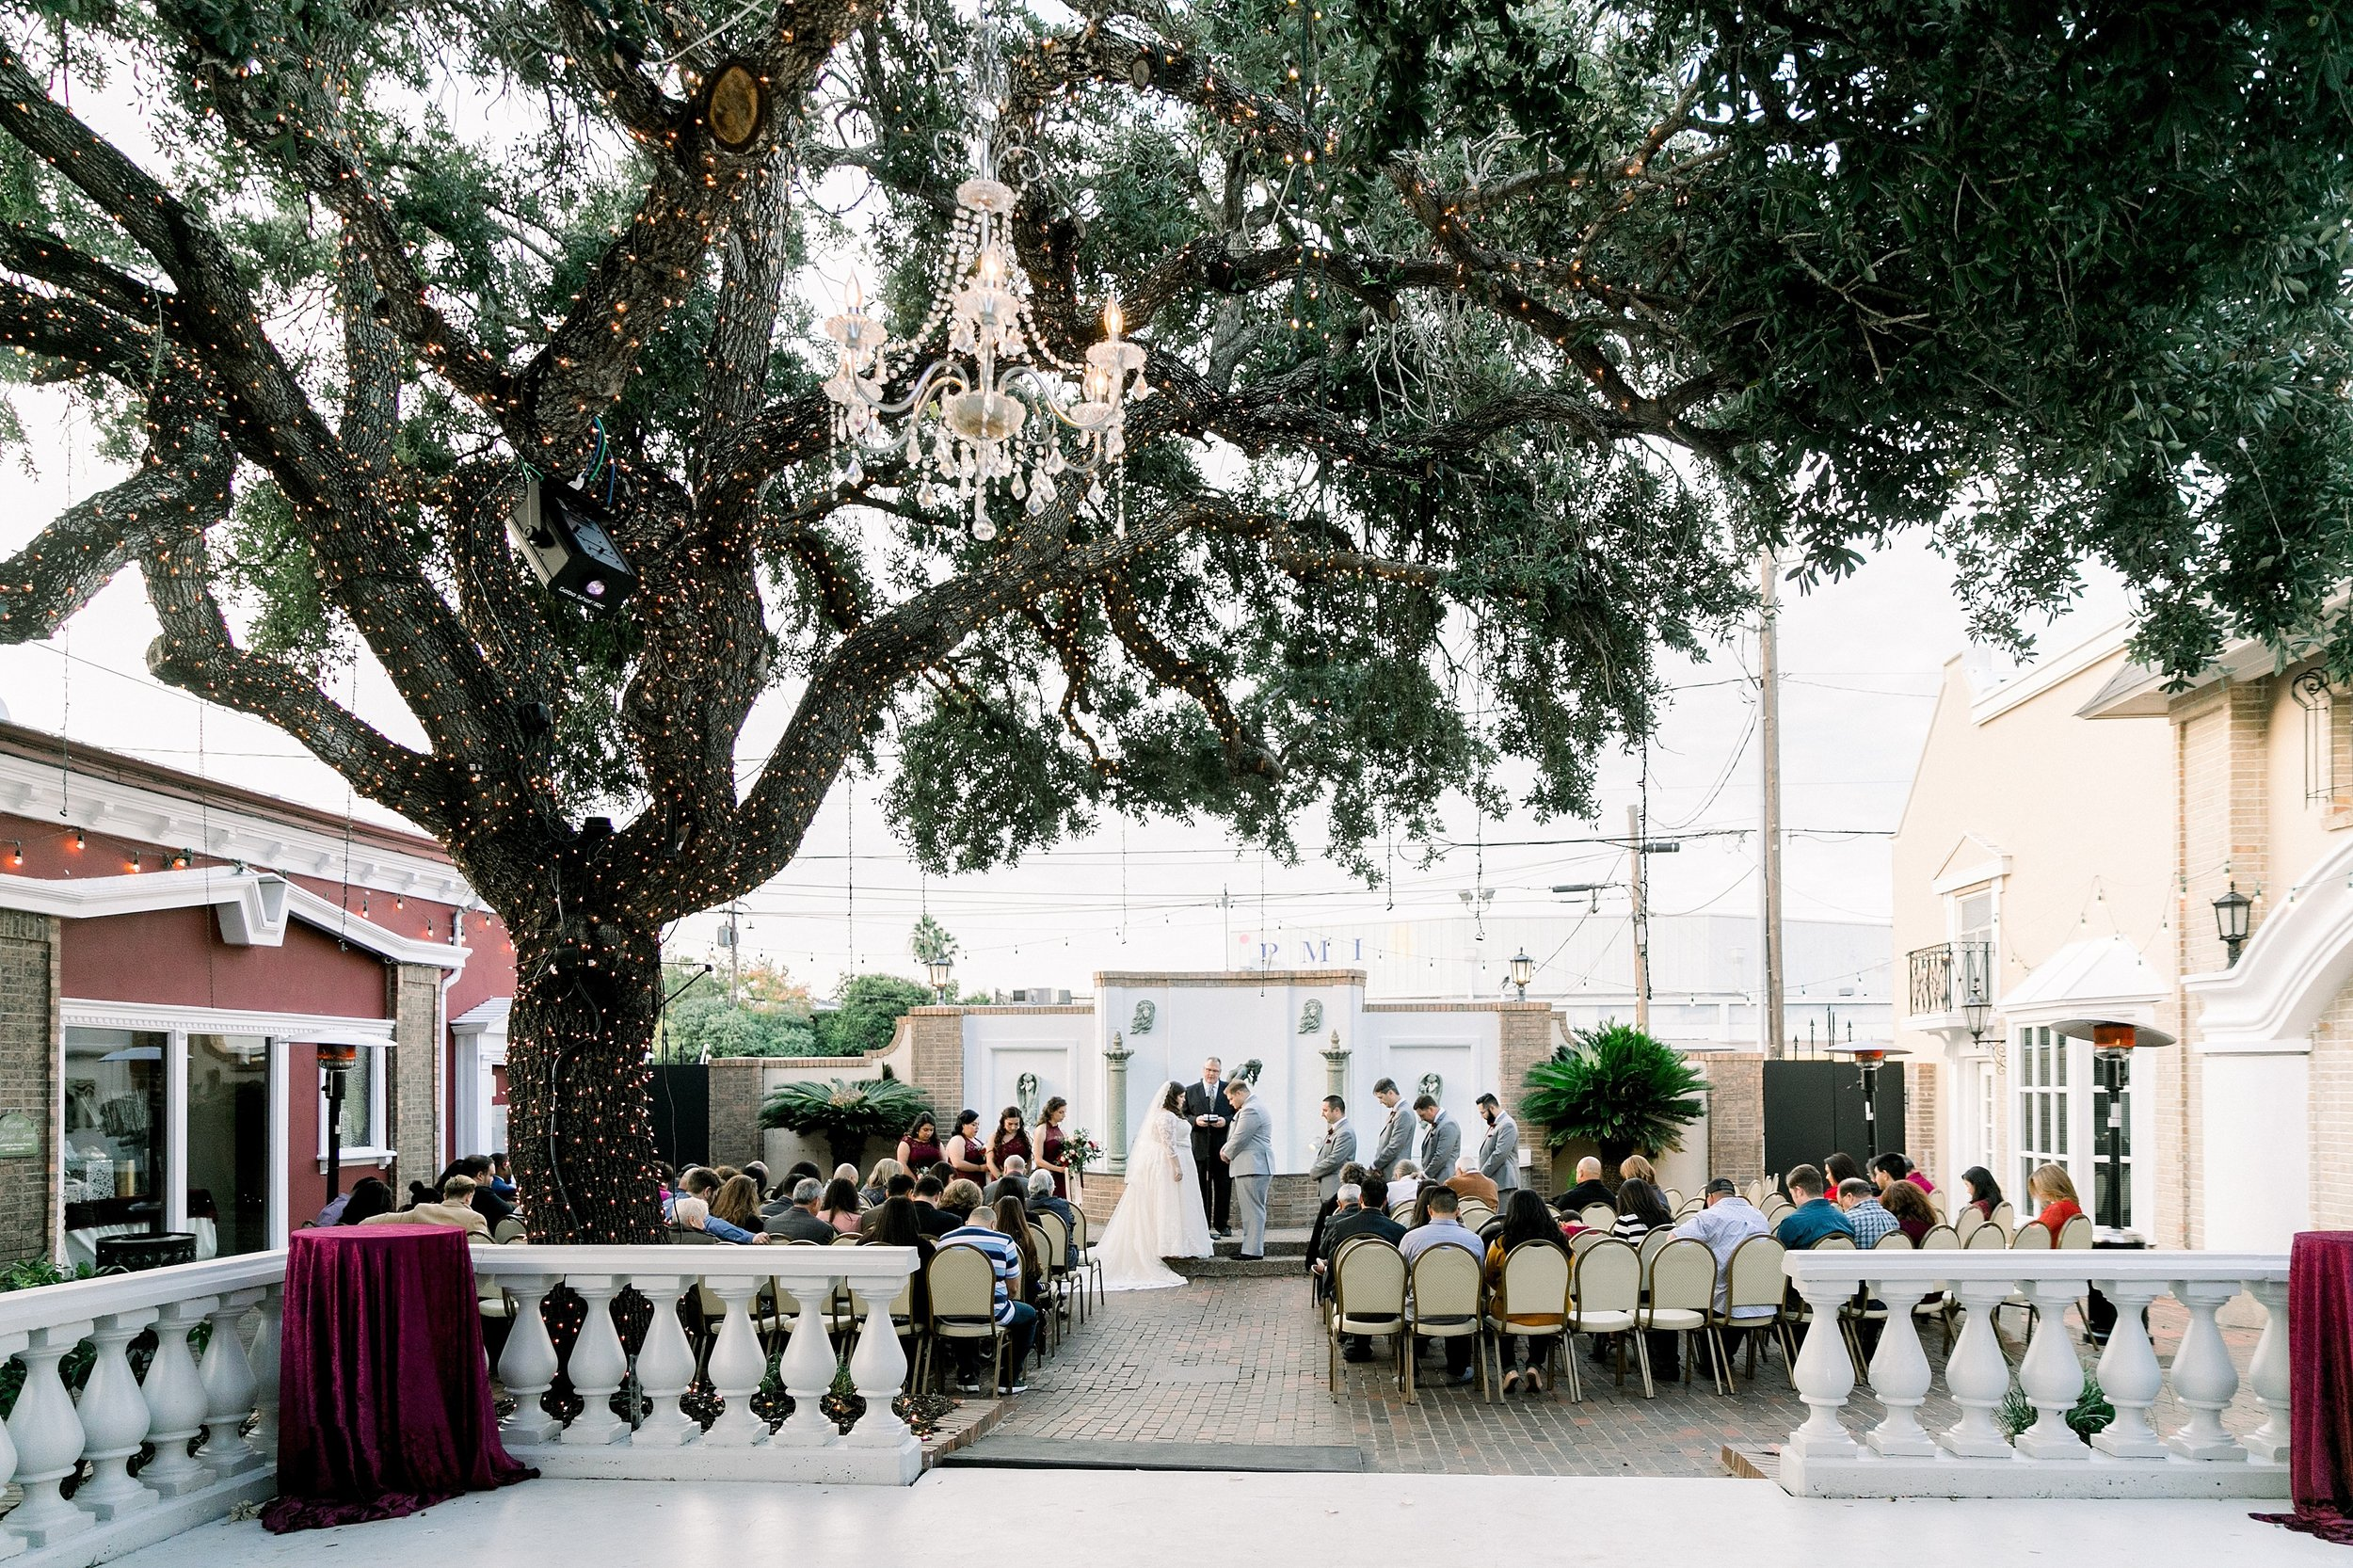 gaslight-at-courtyard-square-corpus-christi-wedding-omni-hotel-fall-winter-wedding-texas-wedding-photographer-lauren-pinson-0068.jpg